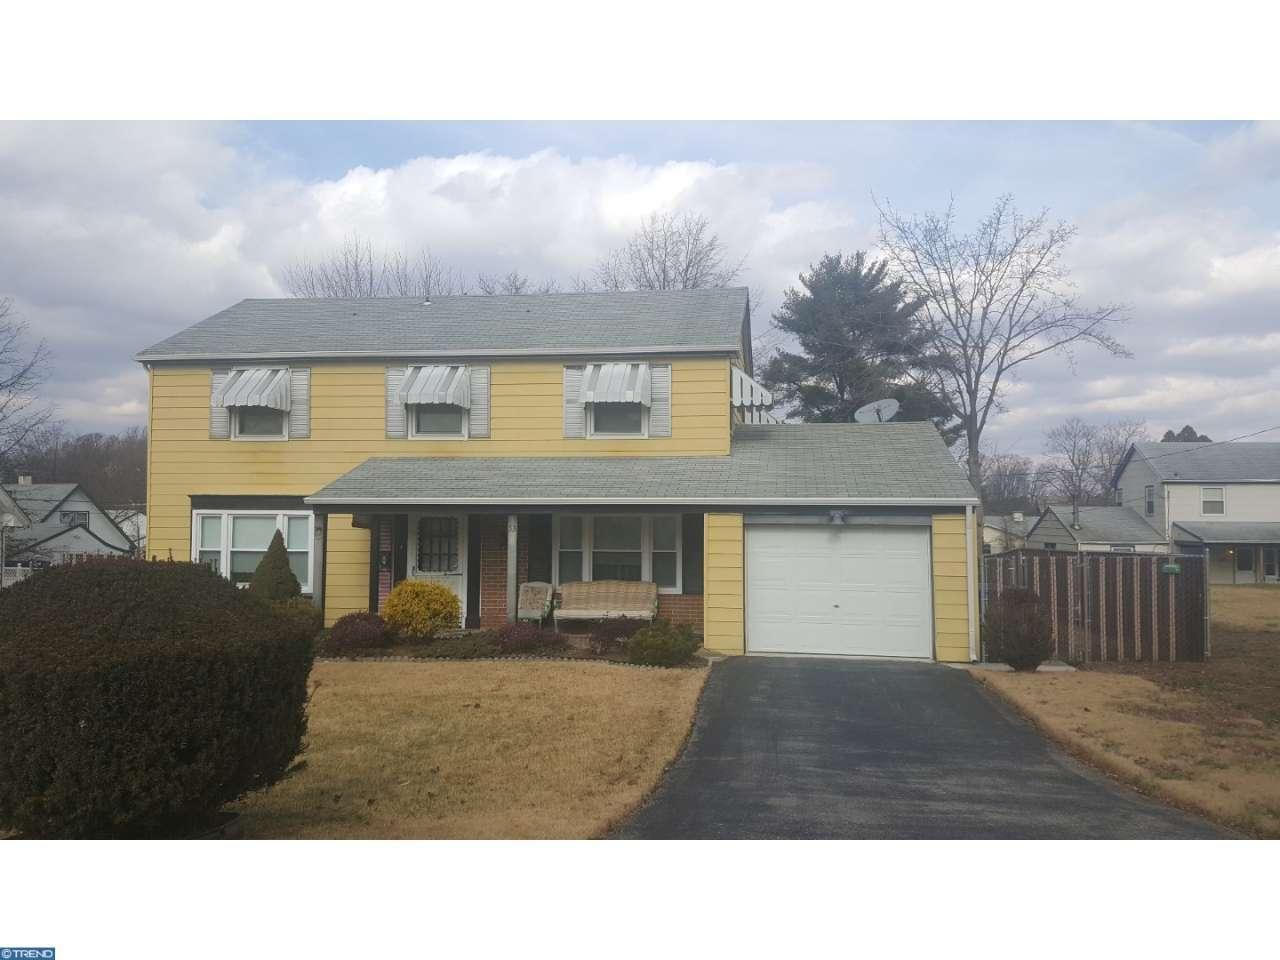 willingboro dating site Willingboro, nj 08046 4 beds 2 baths 1,372 sq ft sfr lot size 6,534 sq ft built  1958 on site 3 days listing provided courtesy of kay and jay realty inc.